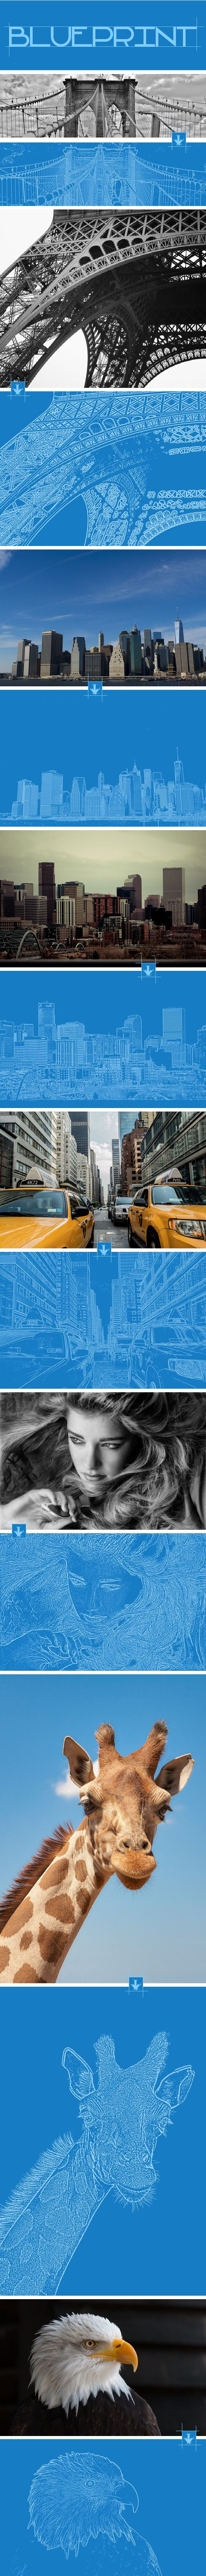 Blueprint Photoshop Action  #modern #outline #paper • Available here → http://graphicriver.net/item/blueprint-photoshop-action/11954375?s_rank=286&ref=pxcr